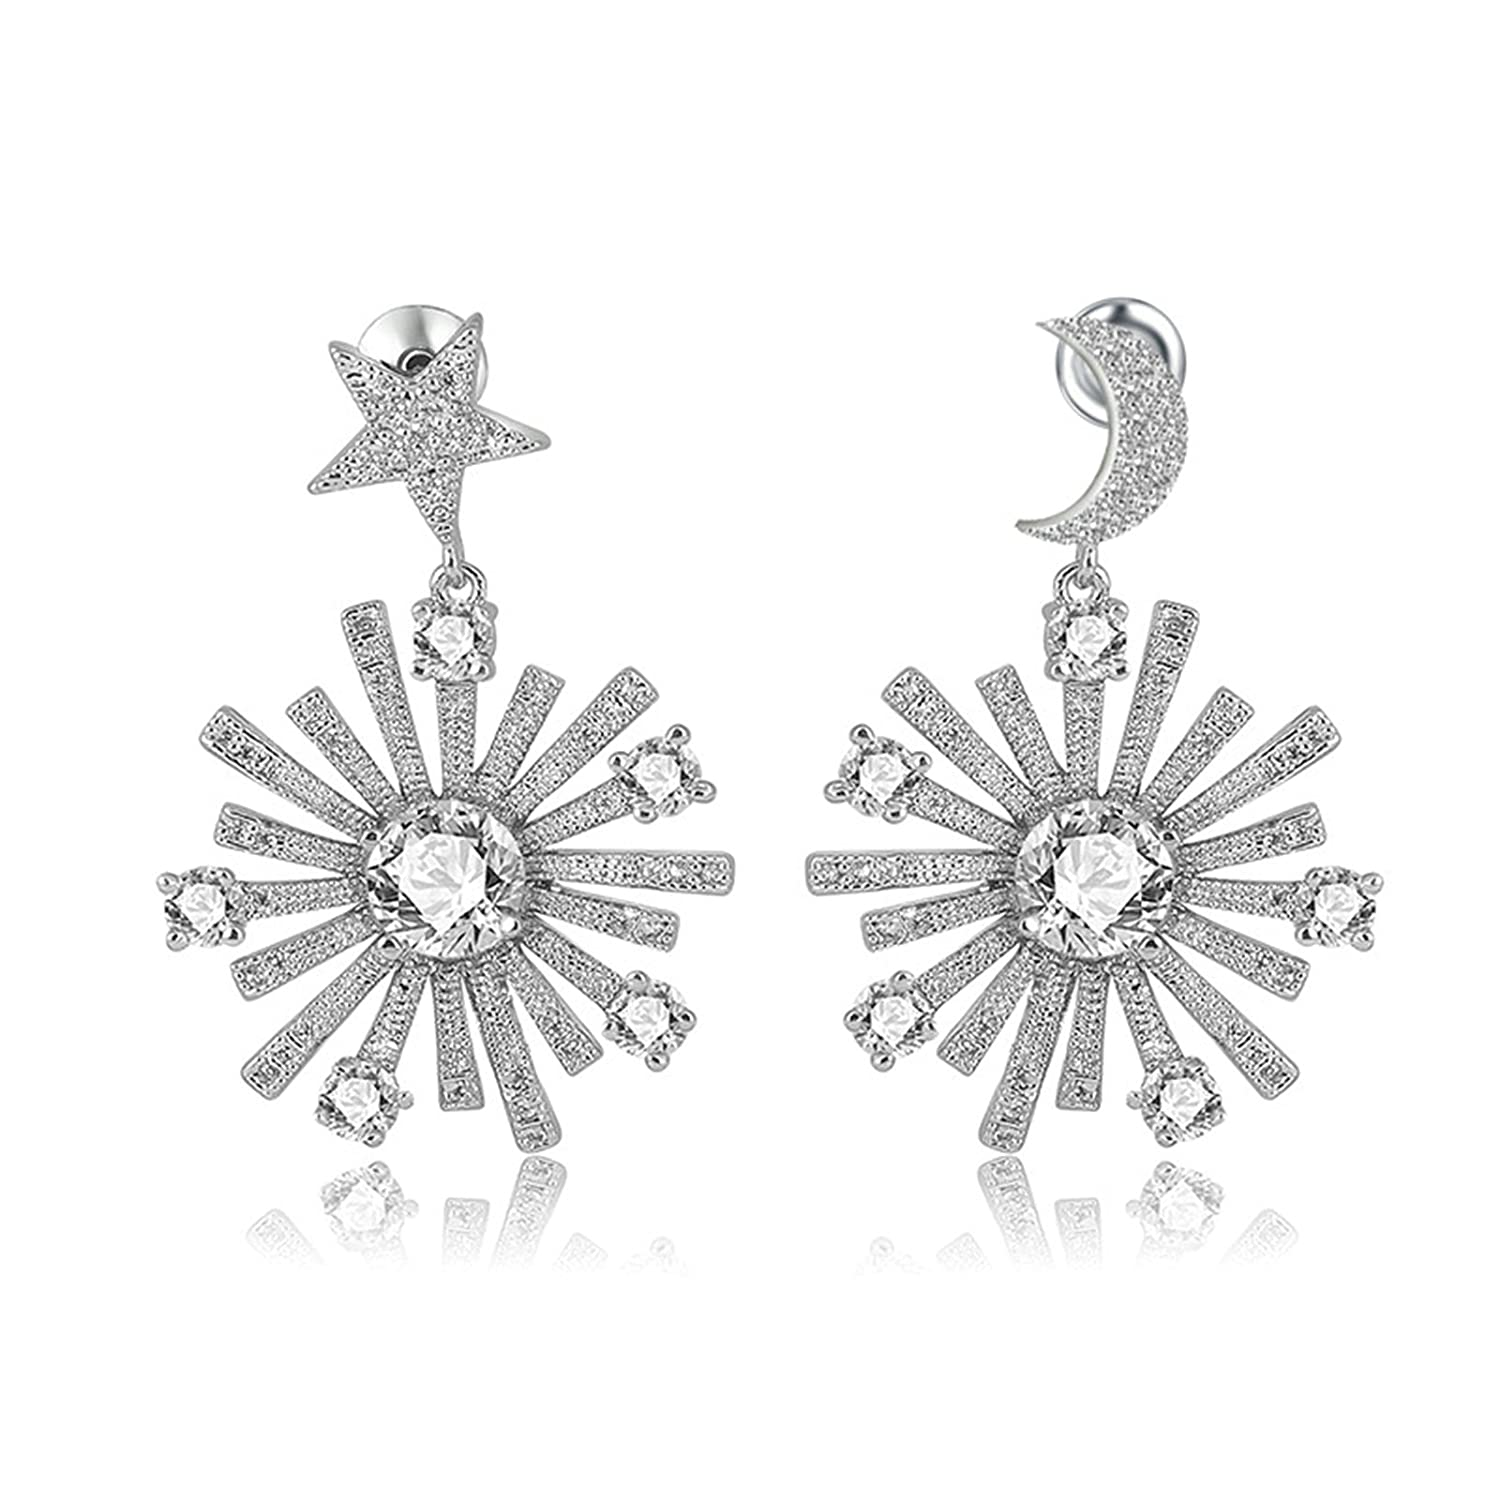 Gnzoe Jewelry Women White Gold Plated Stud Earring 4-Prong White Cubic Zirconia Star Moon 32.7x22MM